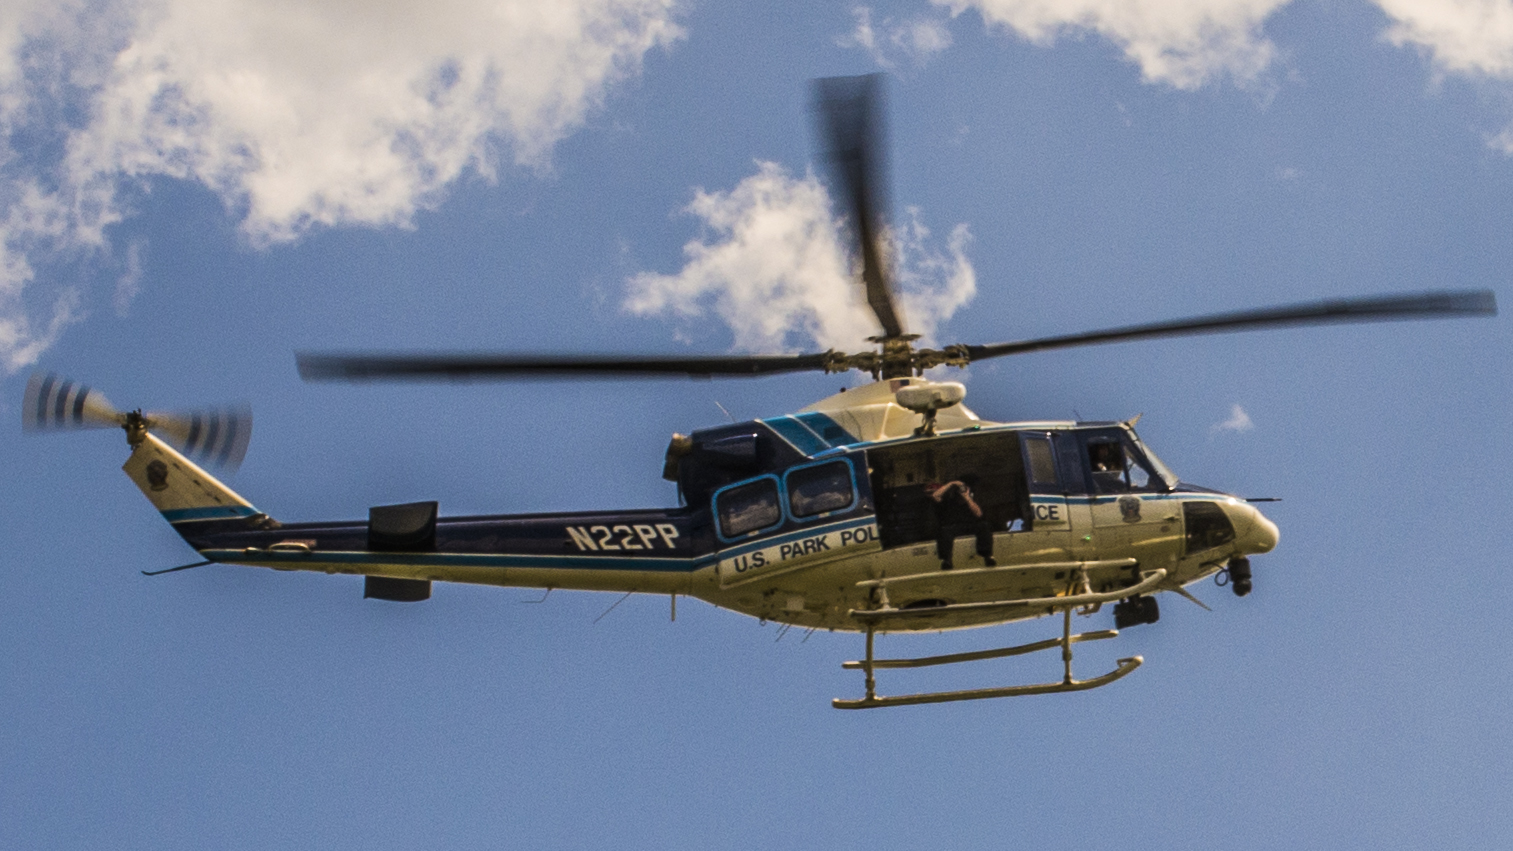 Park Police Helicopter